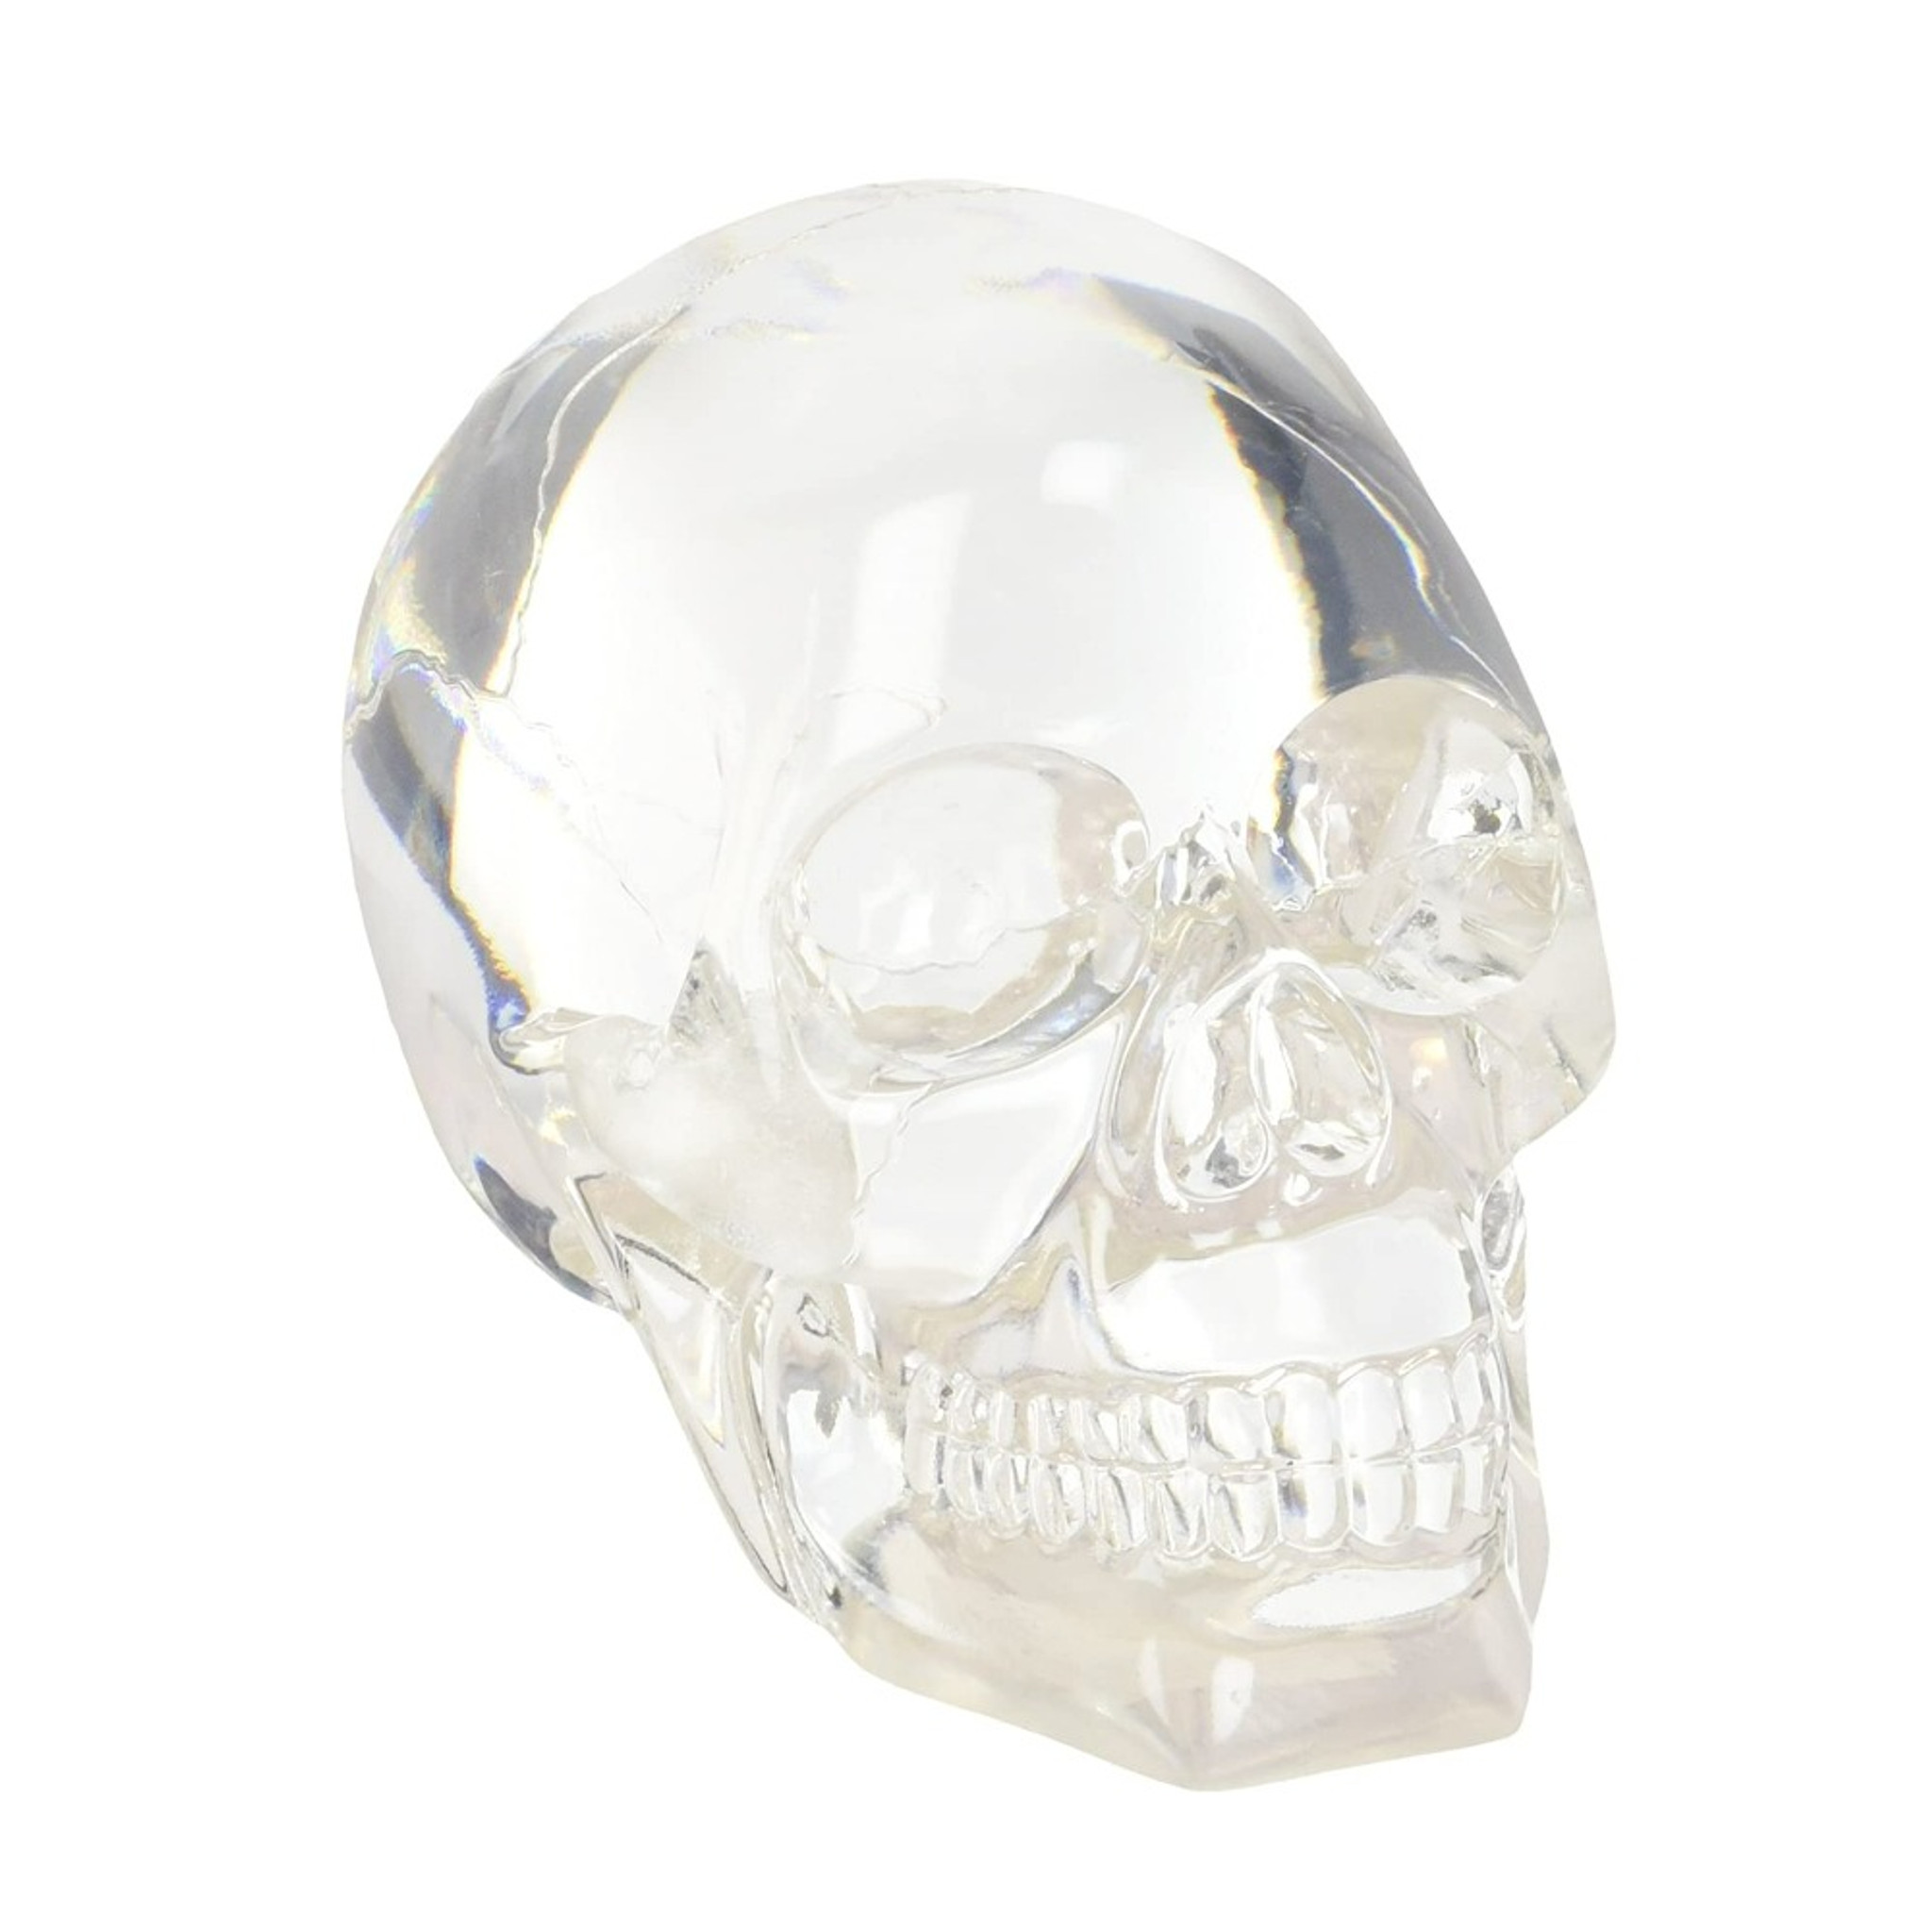 Decorative Skull Sculpture in Color Resin,   Options